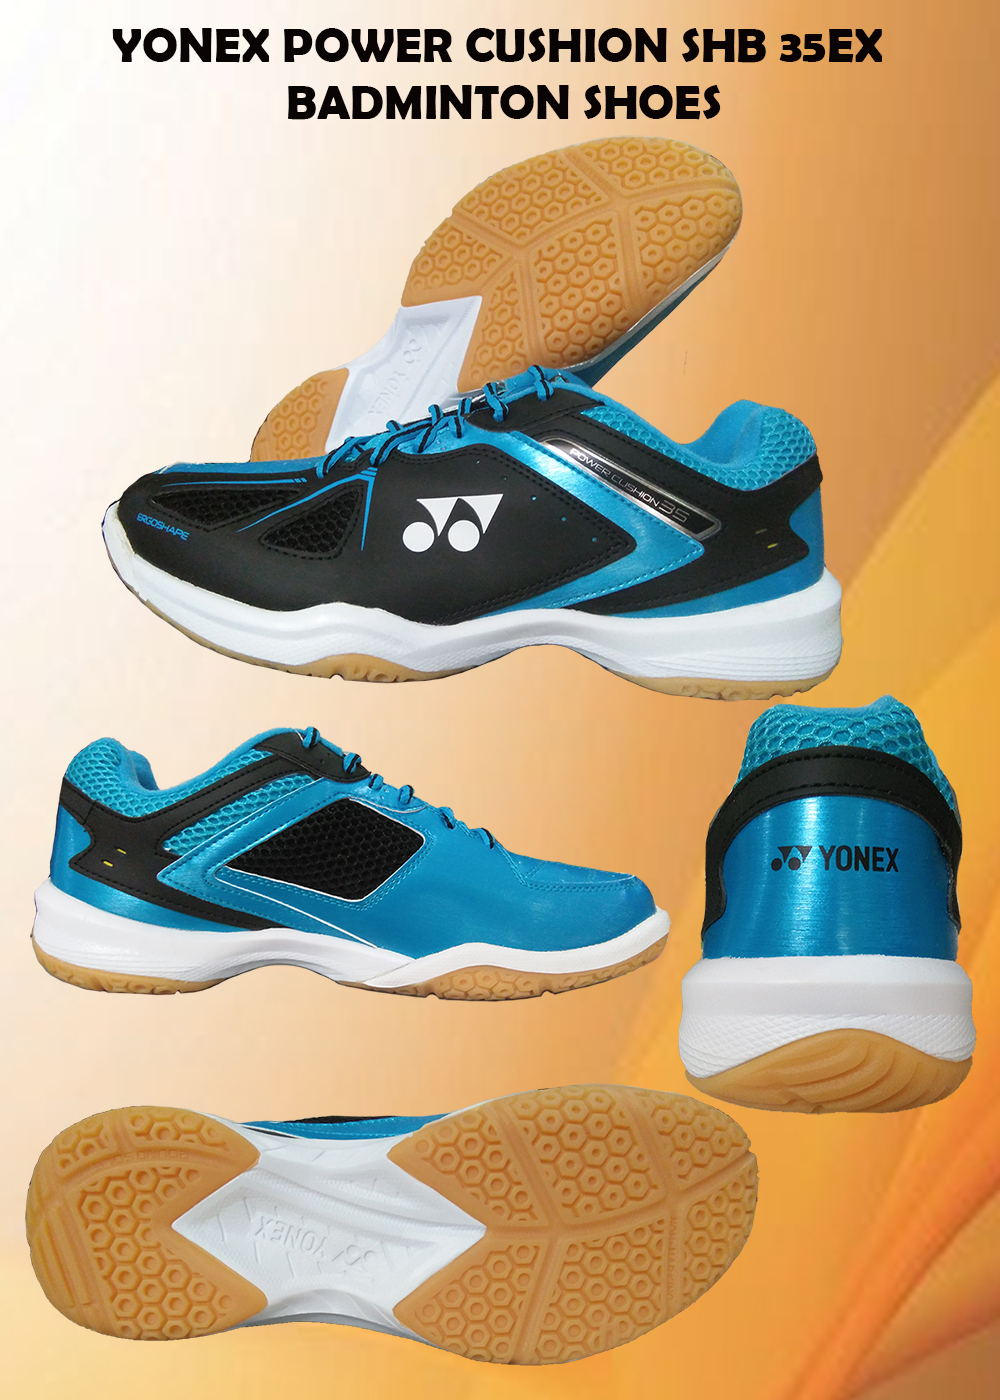 Yonex Power Cushion SHB 35EX Badminton Shoes_2